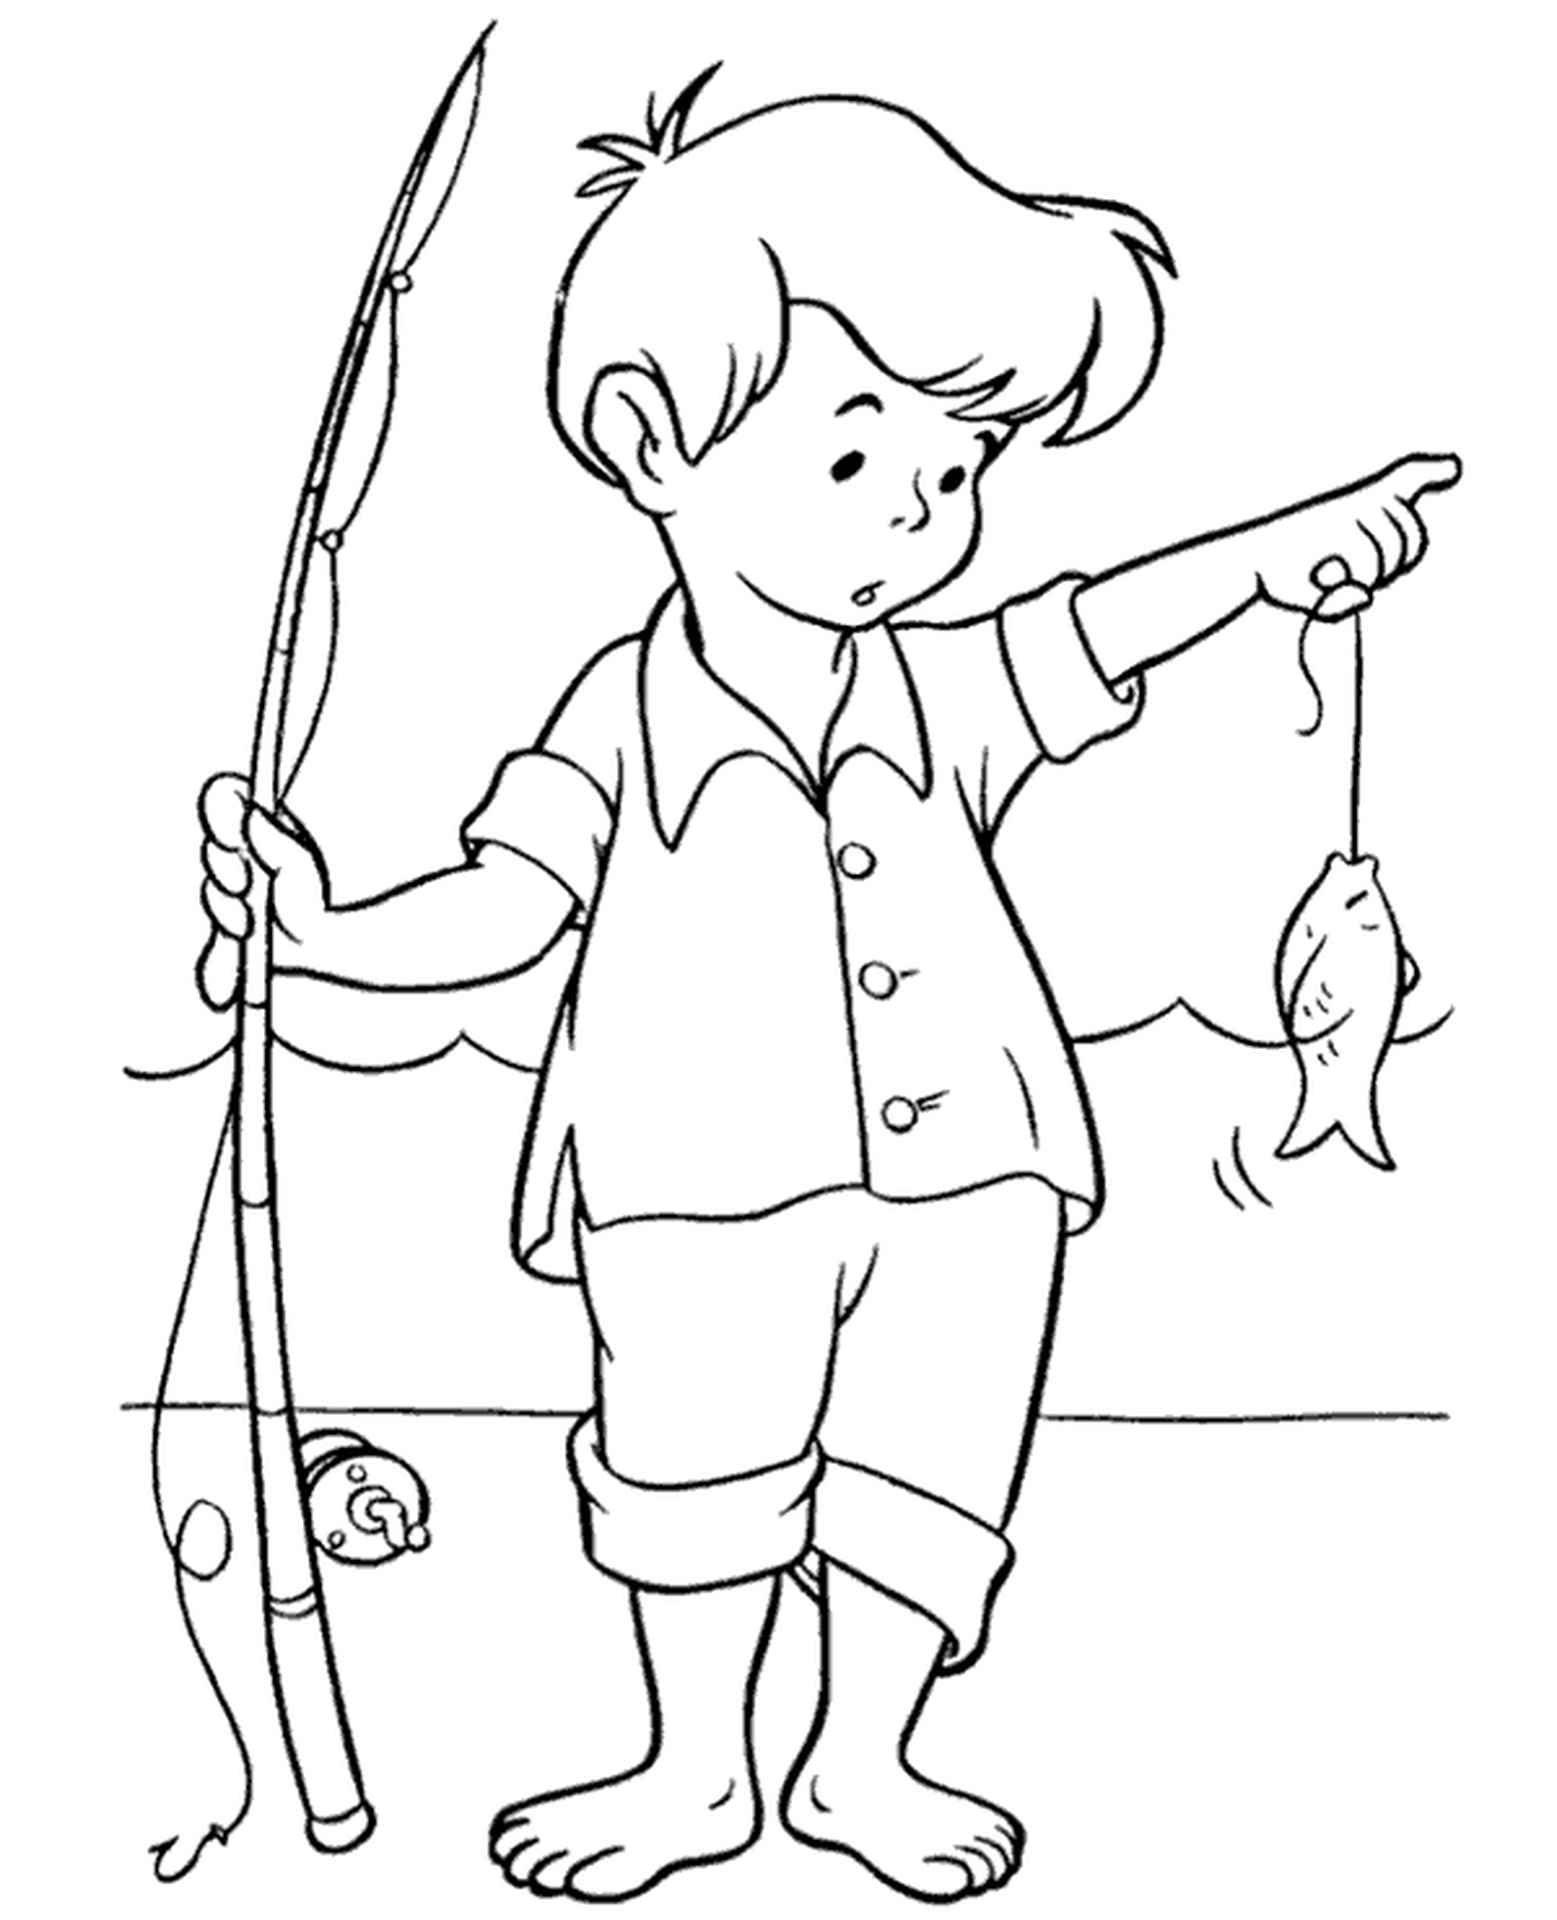 Boy With A Fish Coloring Sheet